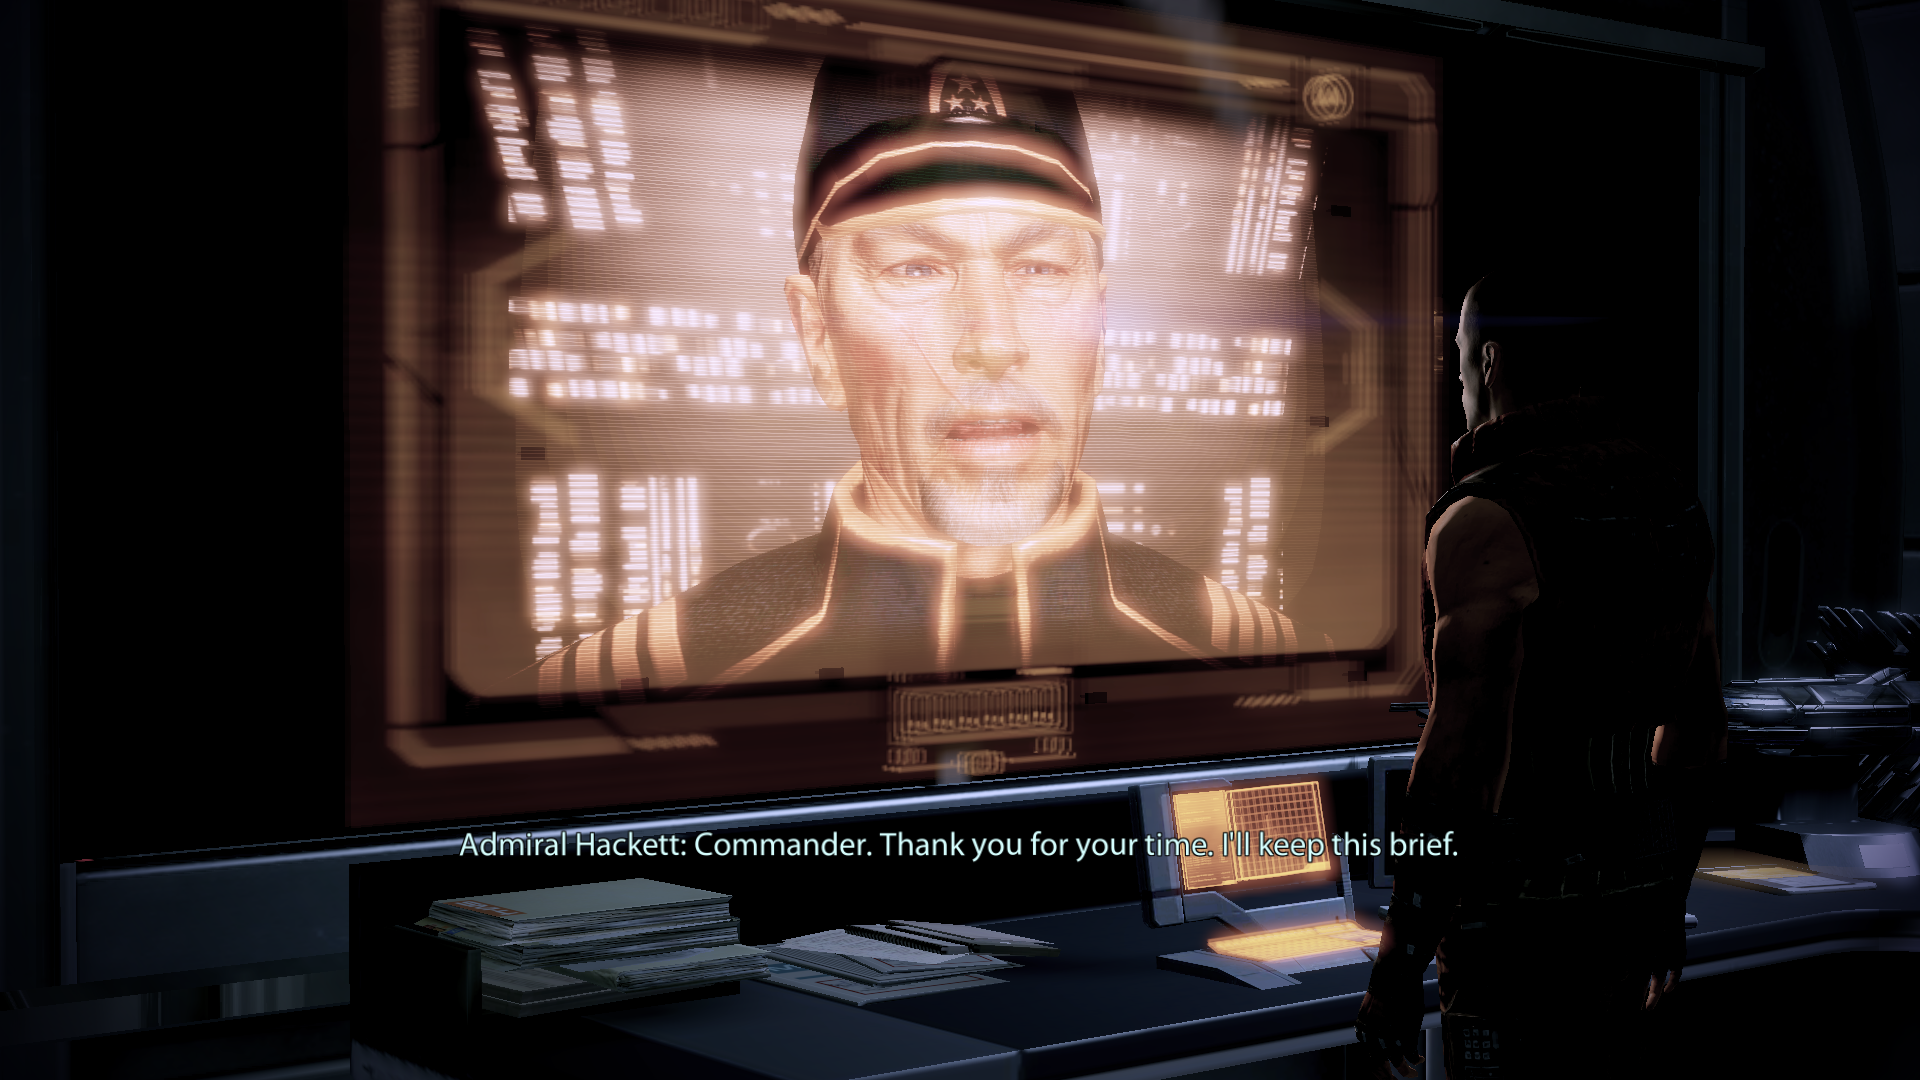 Mass Effect 2: Arrival Windows Request from admiral himself. Nobody could say 'no'.